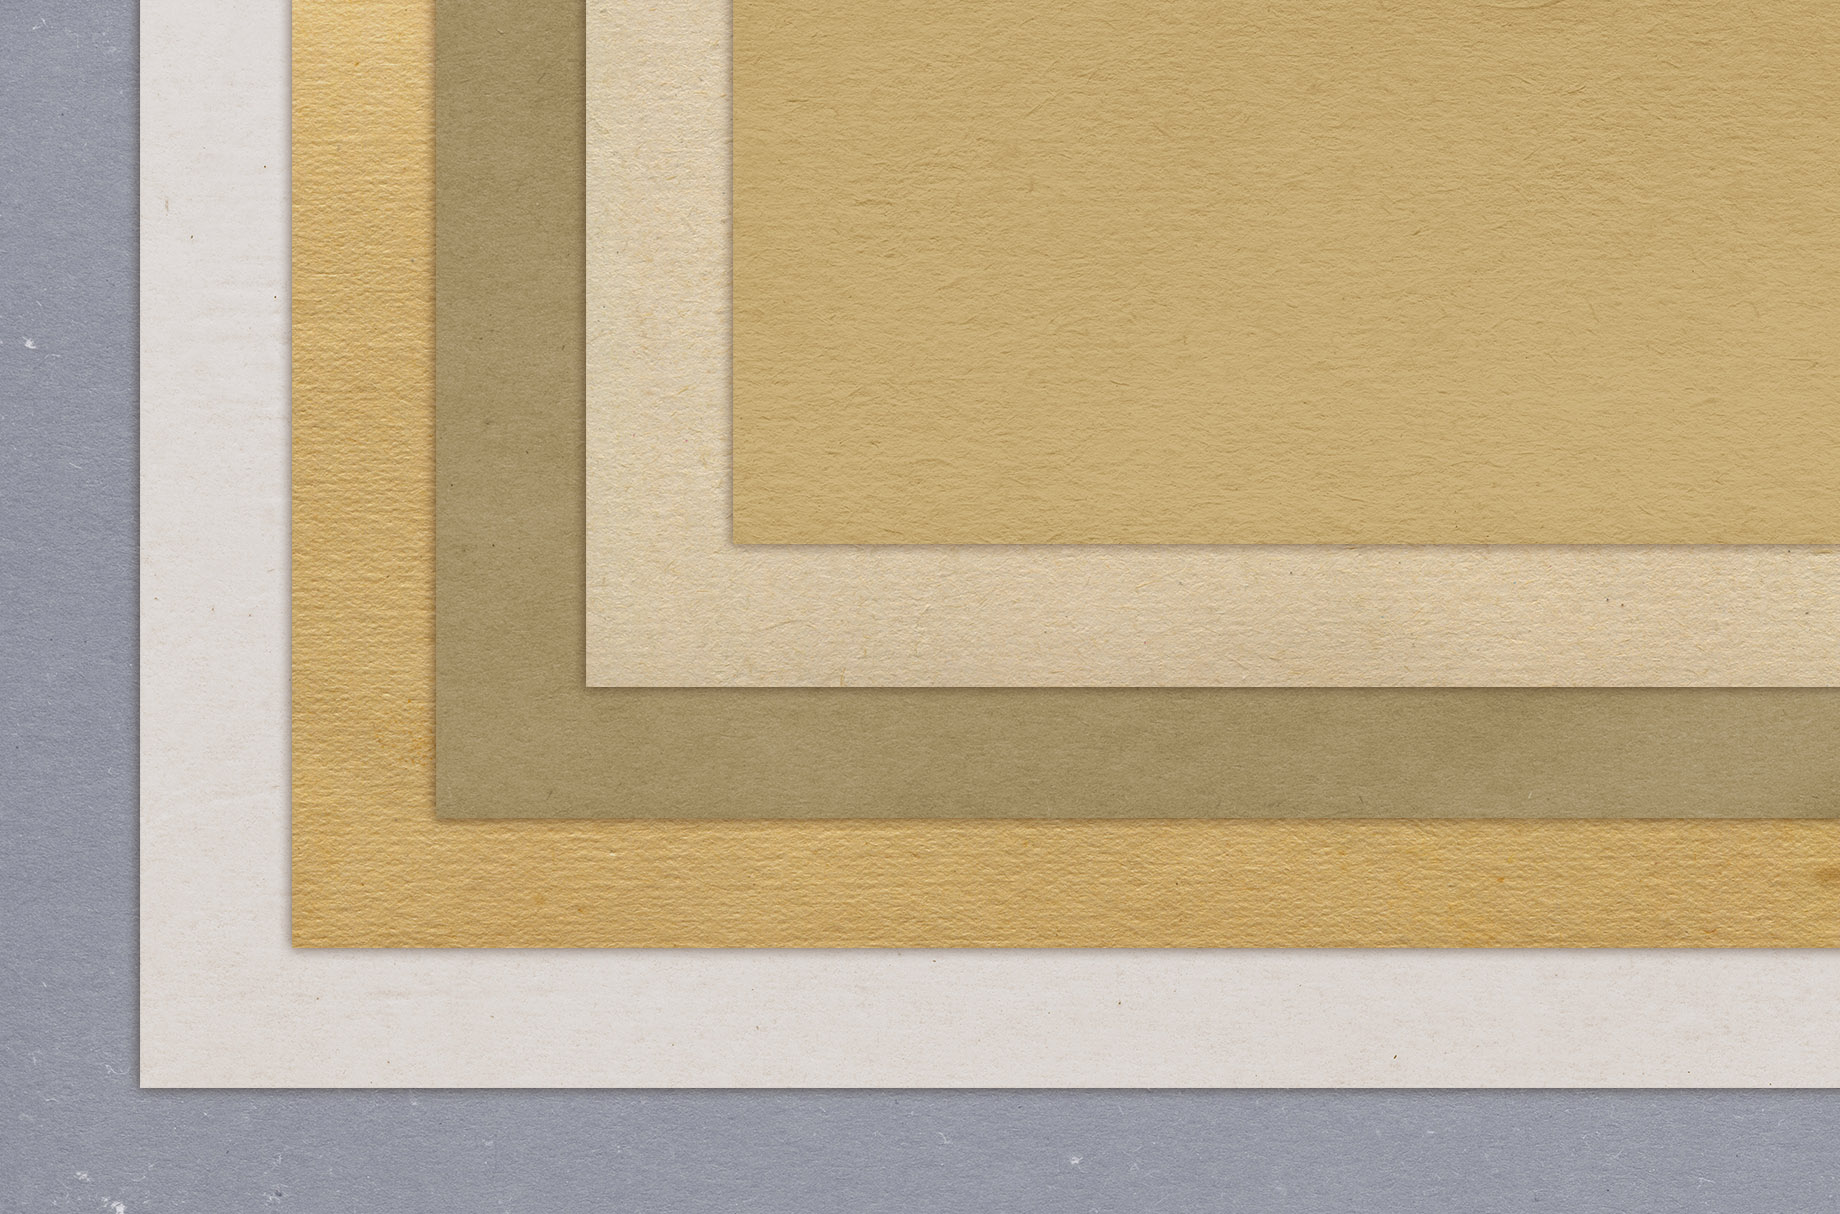 391 Vintage Paper Textures example image 5